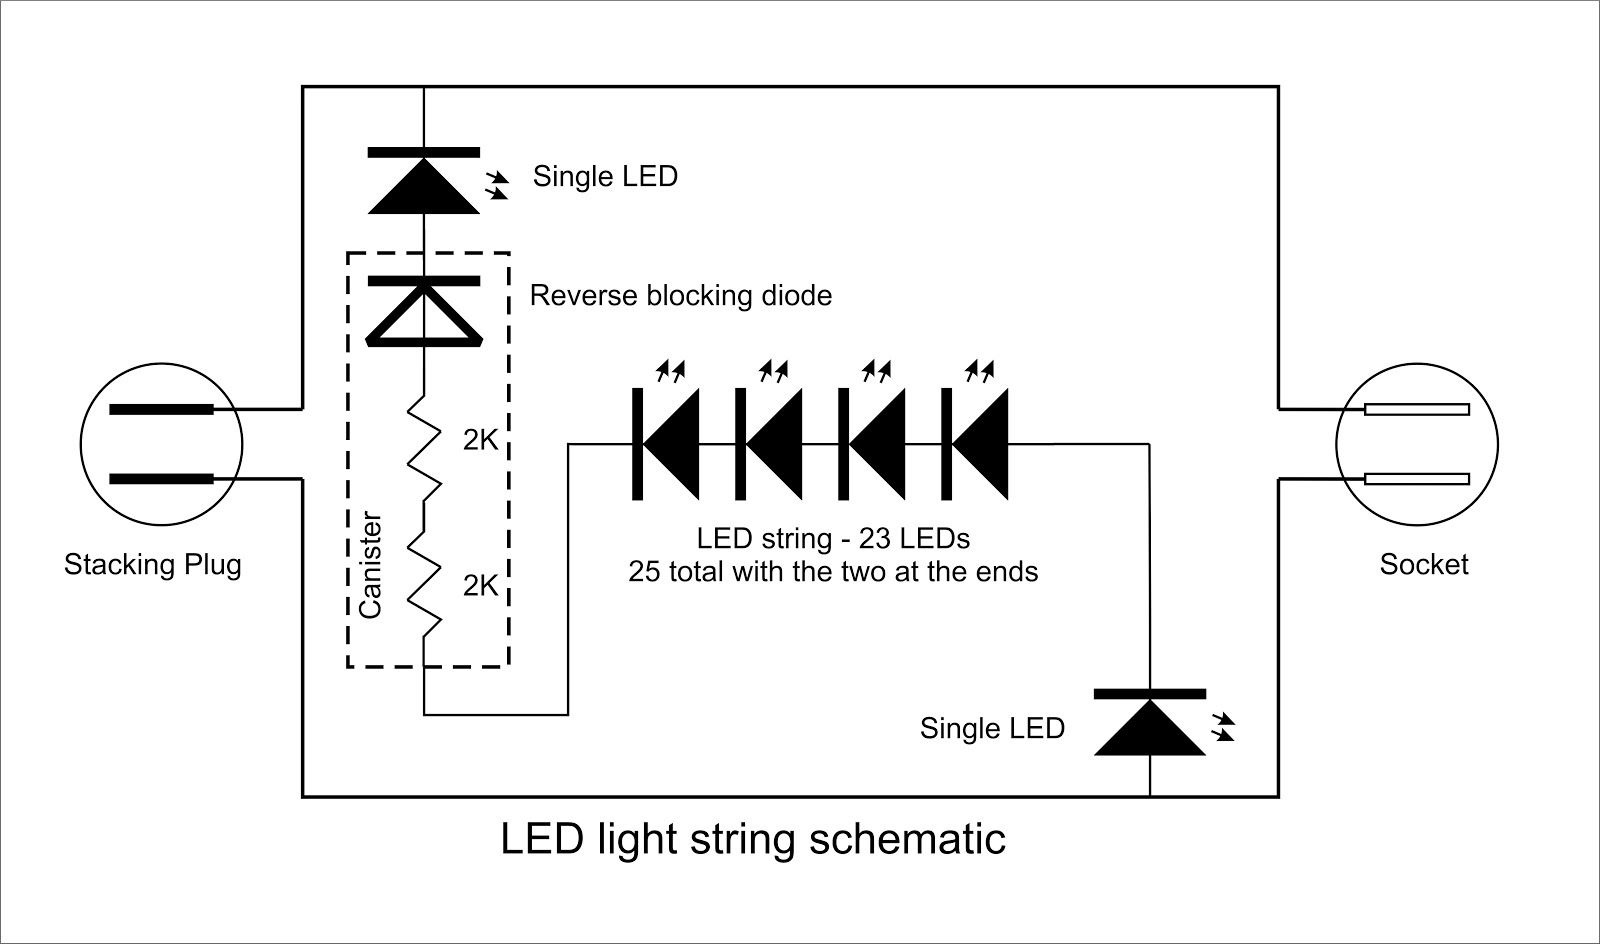 georgesworkshop fixing led string lights light bar wiring diagram led light string wiring diagram [ 1600 x 944 Pixel ]